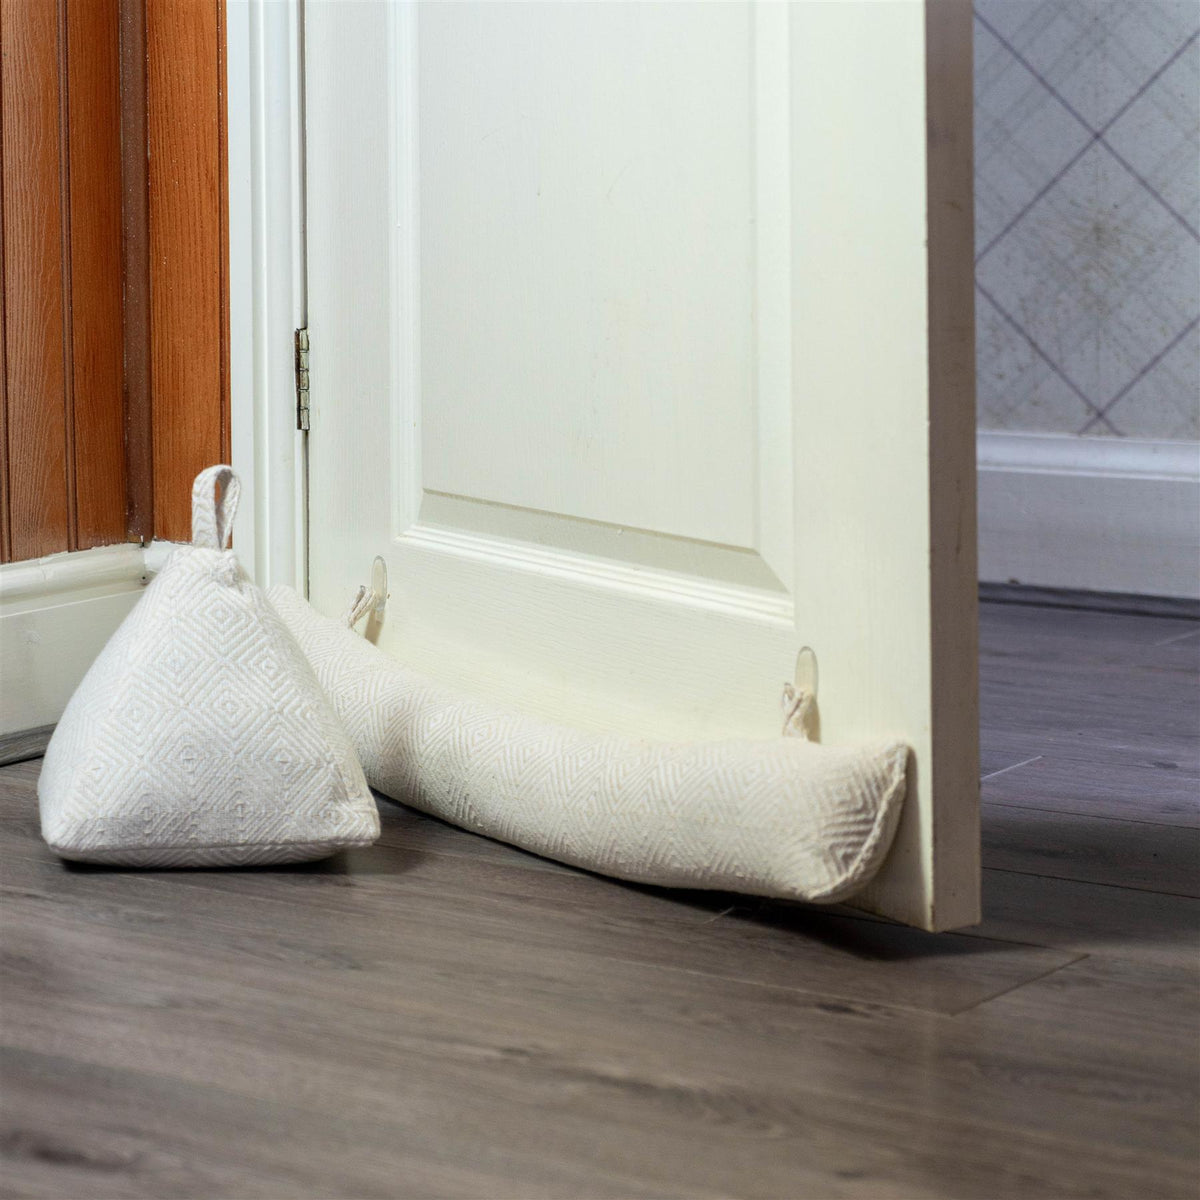 Nicola Spring Decorative Door Stop Natural 20cm Interior Door Lifestyle with Matching Draught Excluder